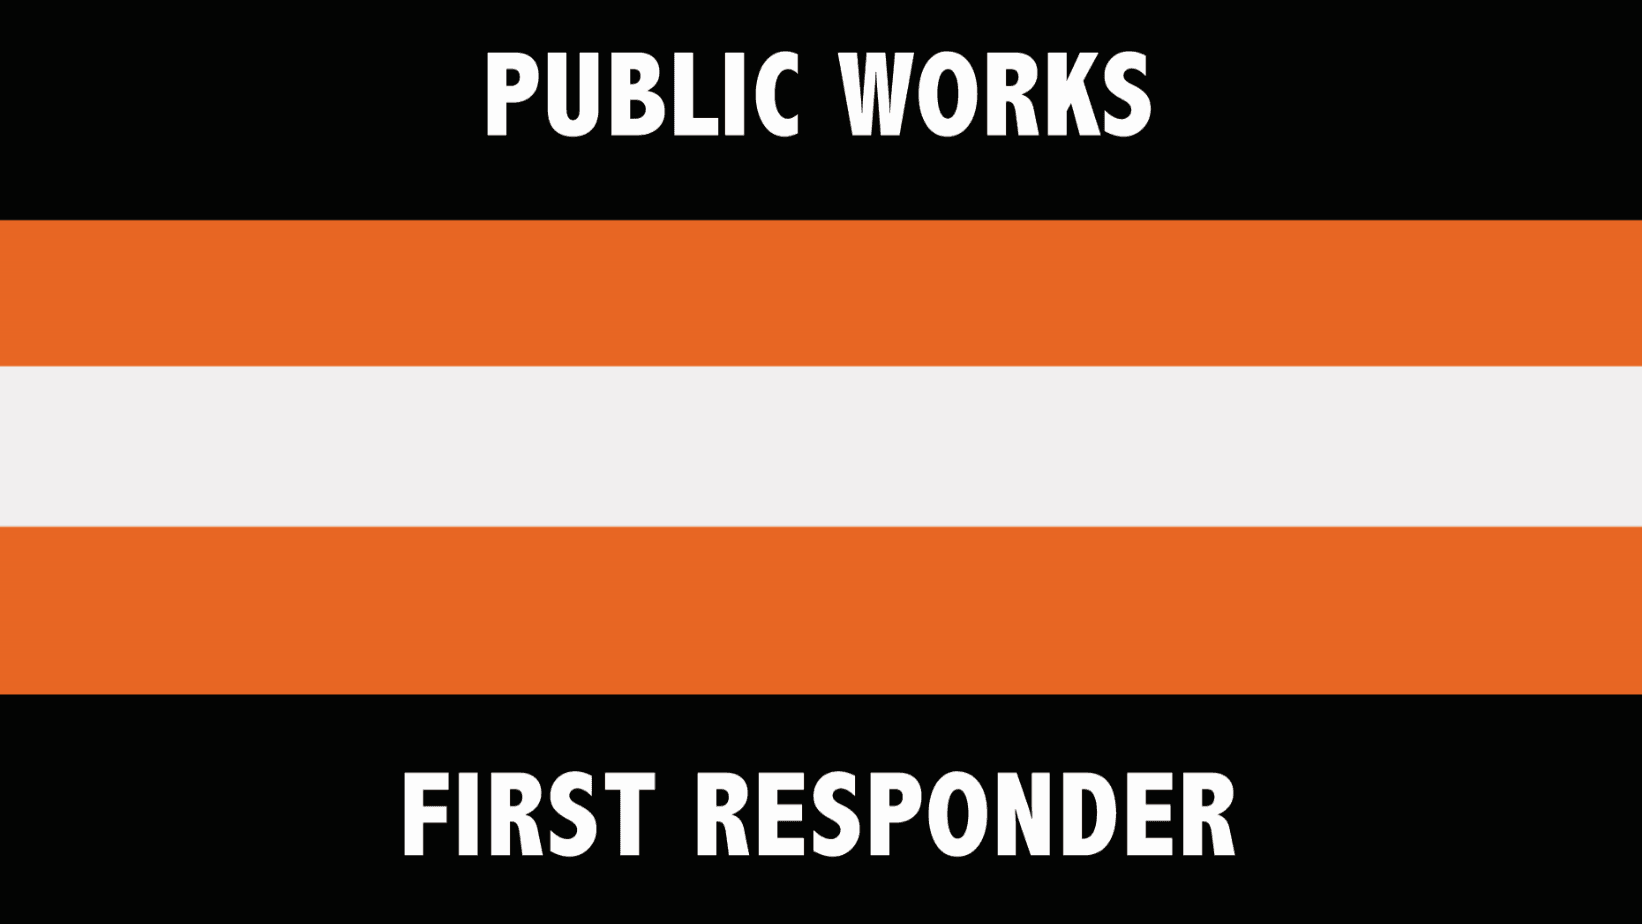 PW first responders